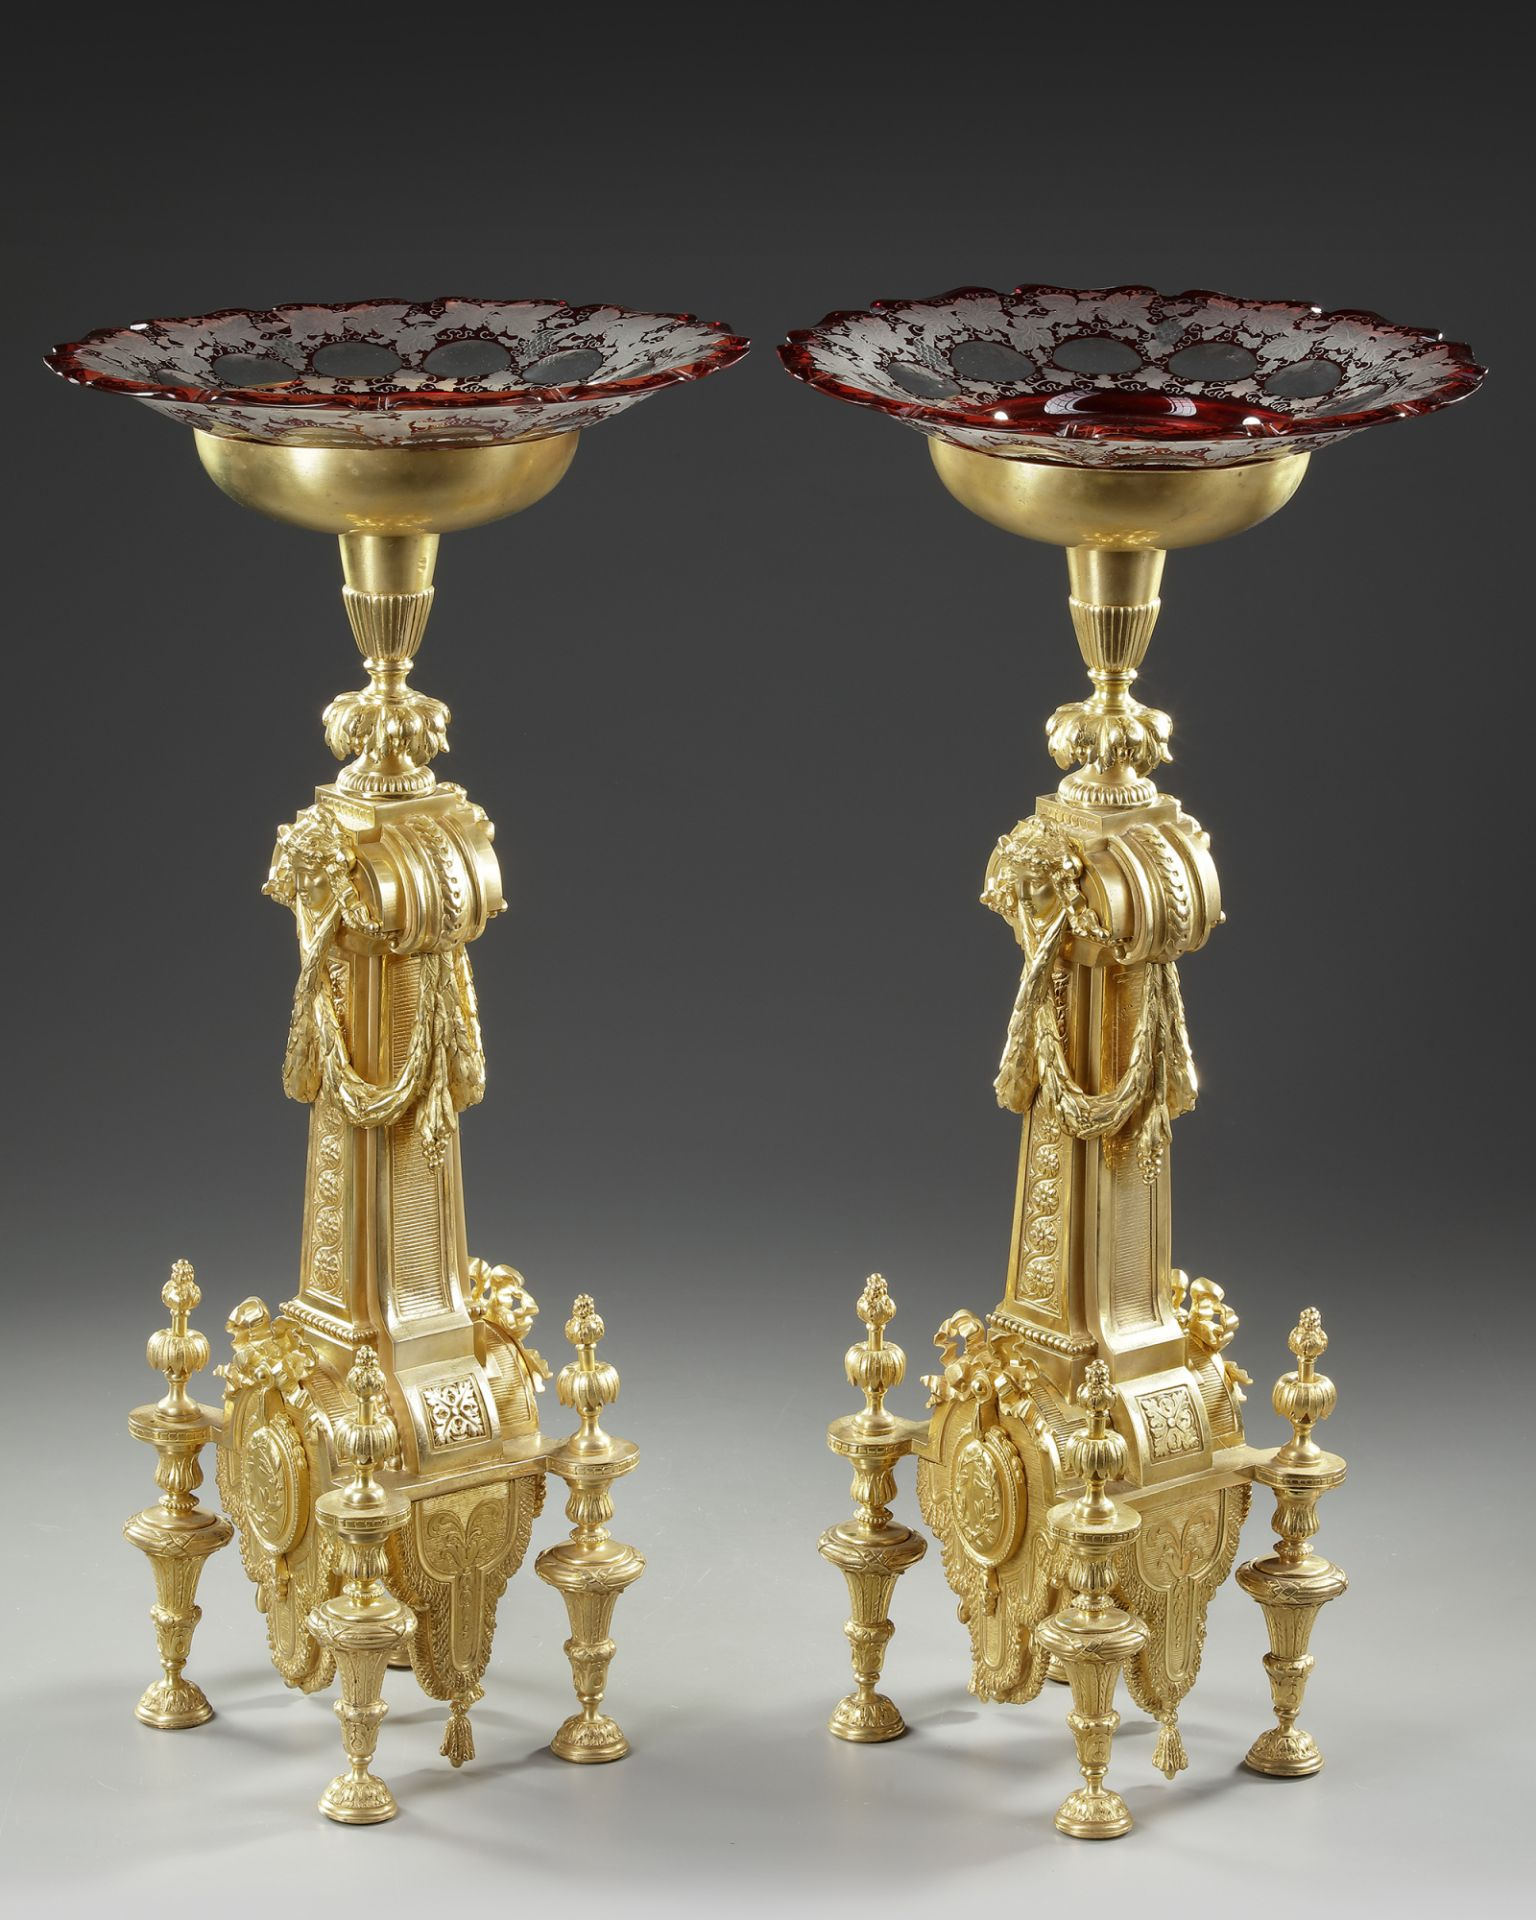 A PAIR OF ORMOLU CENTERPIECES, FRANCE, 19TH CENTURY - Image 2 of 4